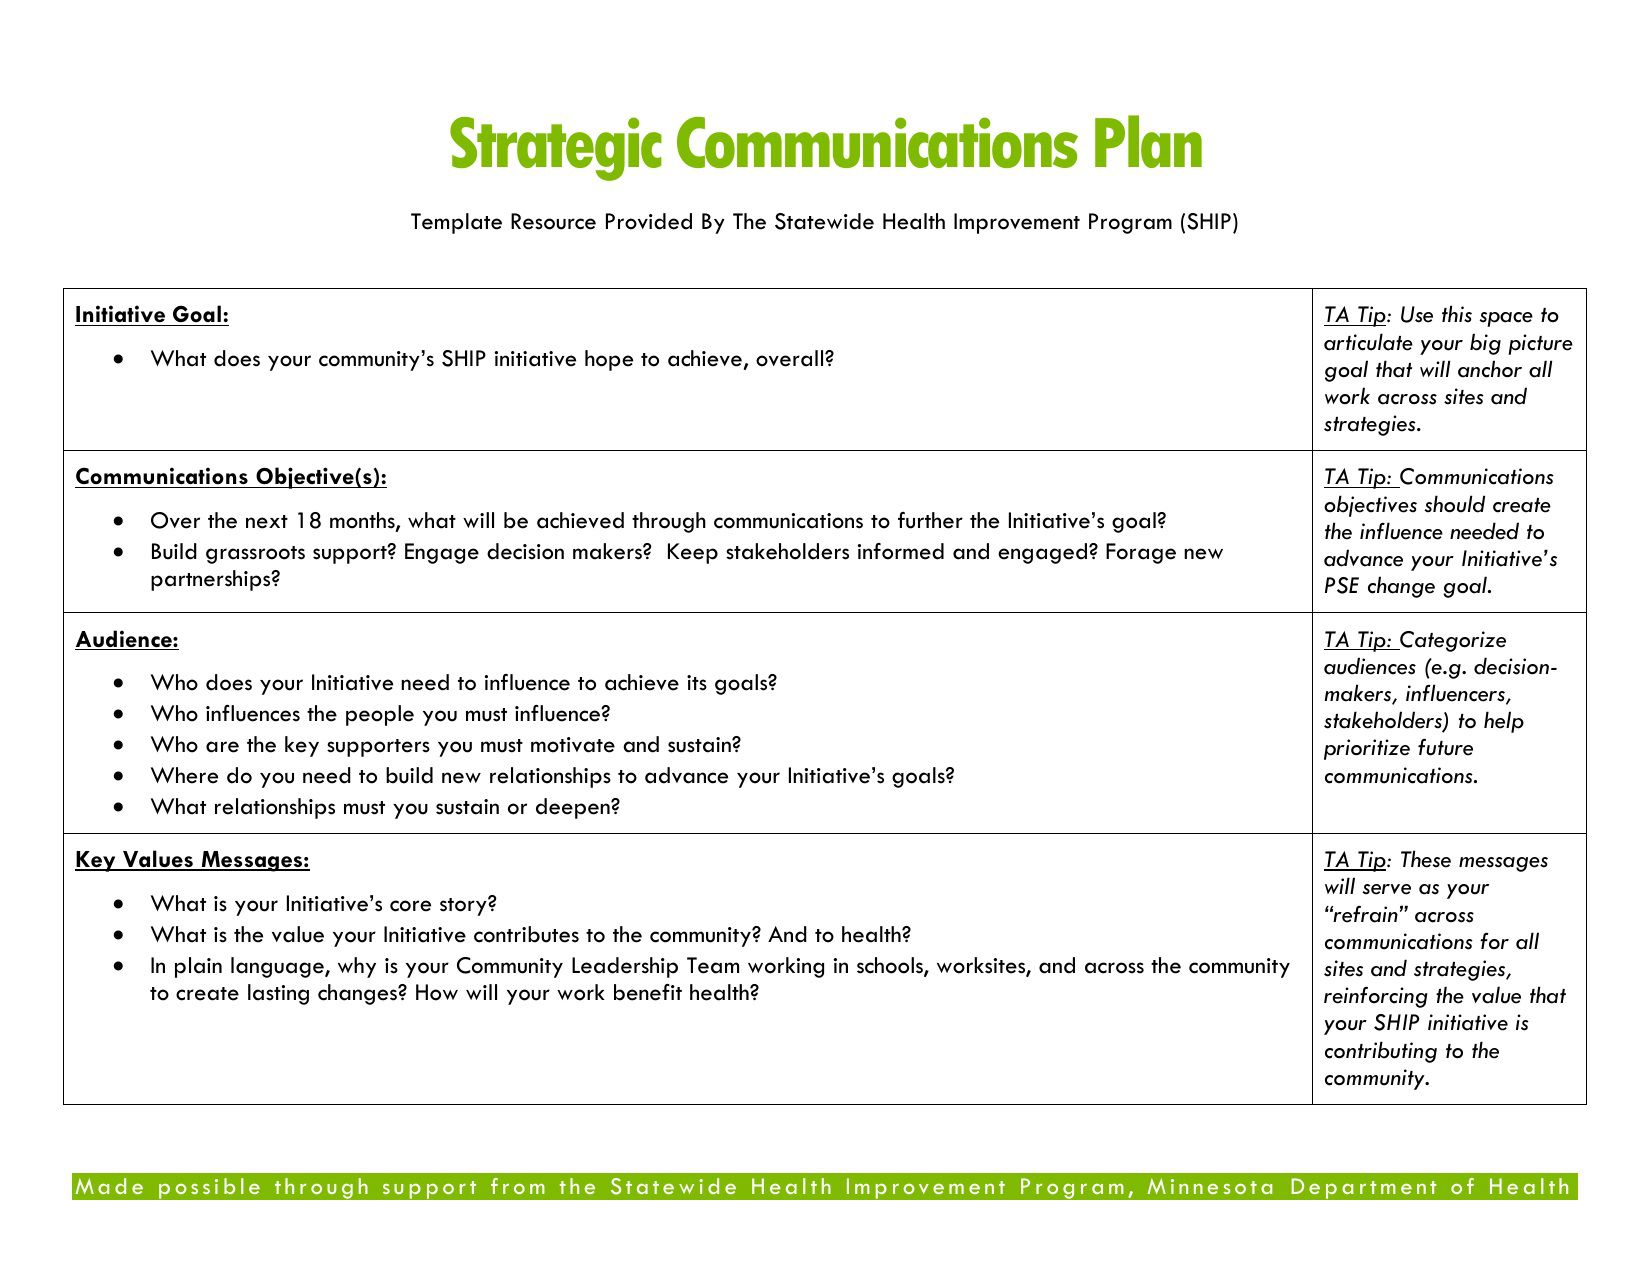 004 Impressive Strategy Communication Plan Template Photo  Internal And Action Example SampleFull